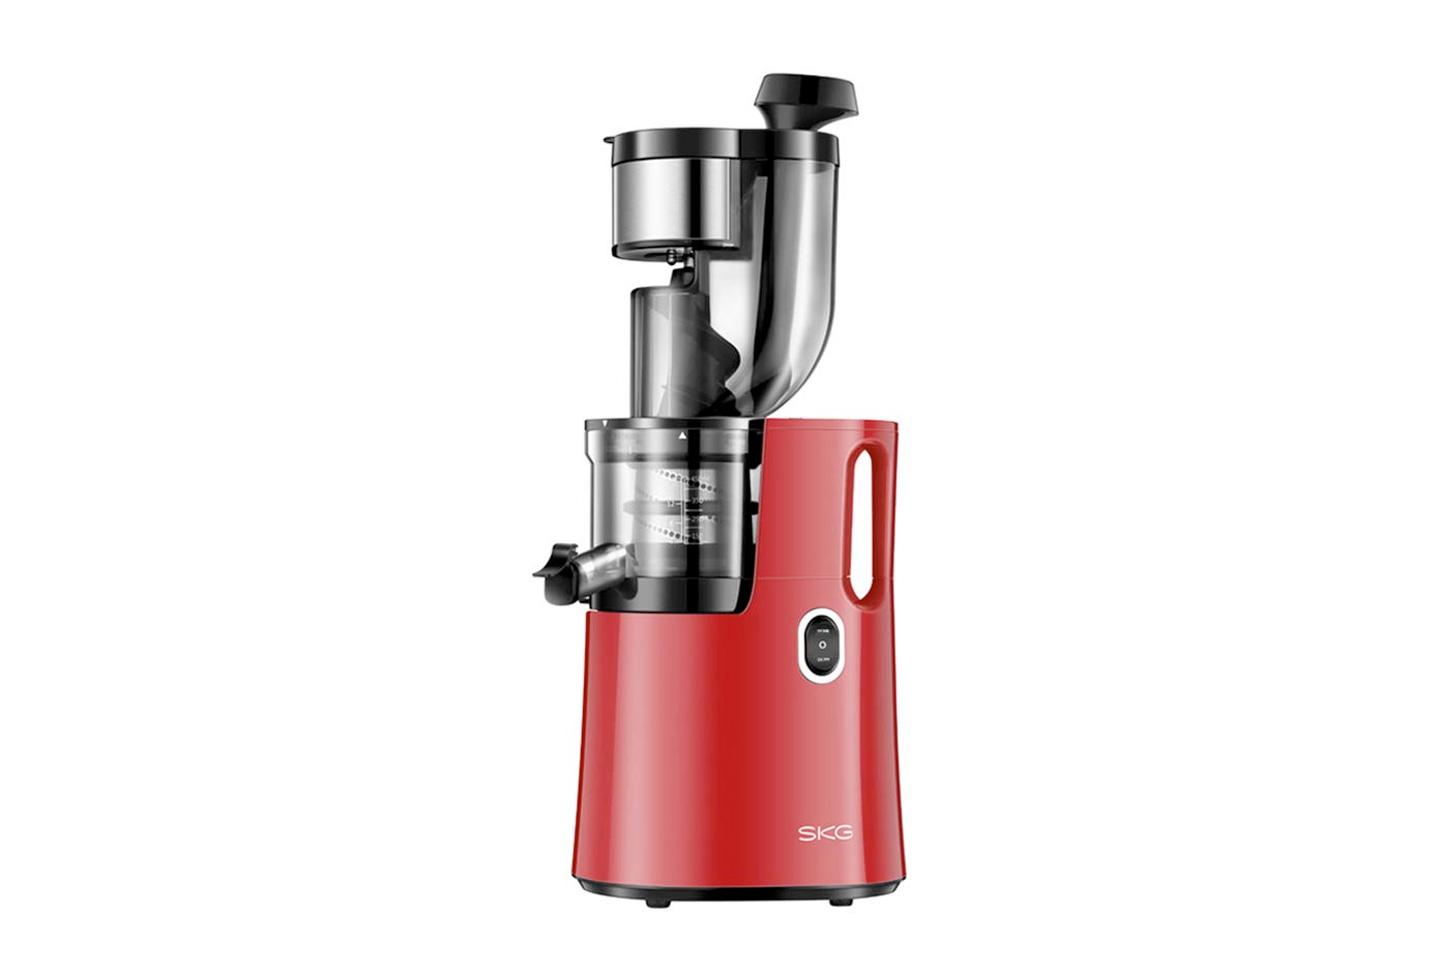 SKG Q8 Series Wide Chute Vertical Slow Juicer Review | HeartyBlends.co